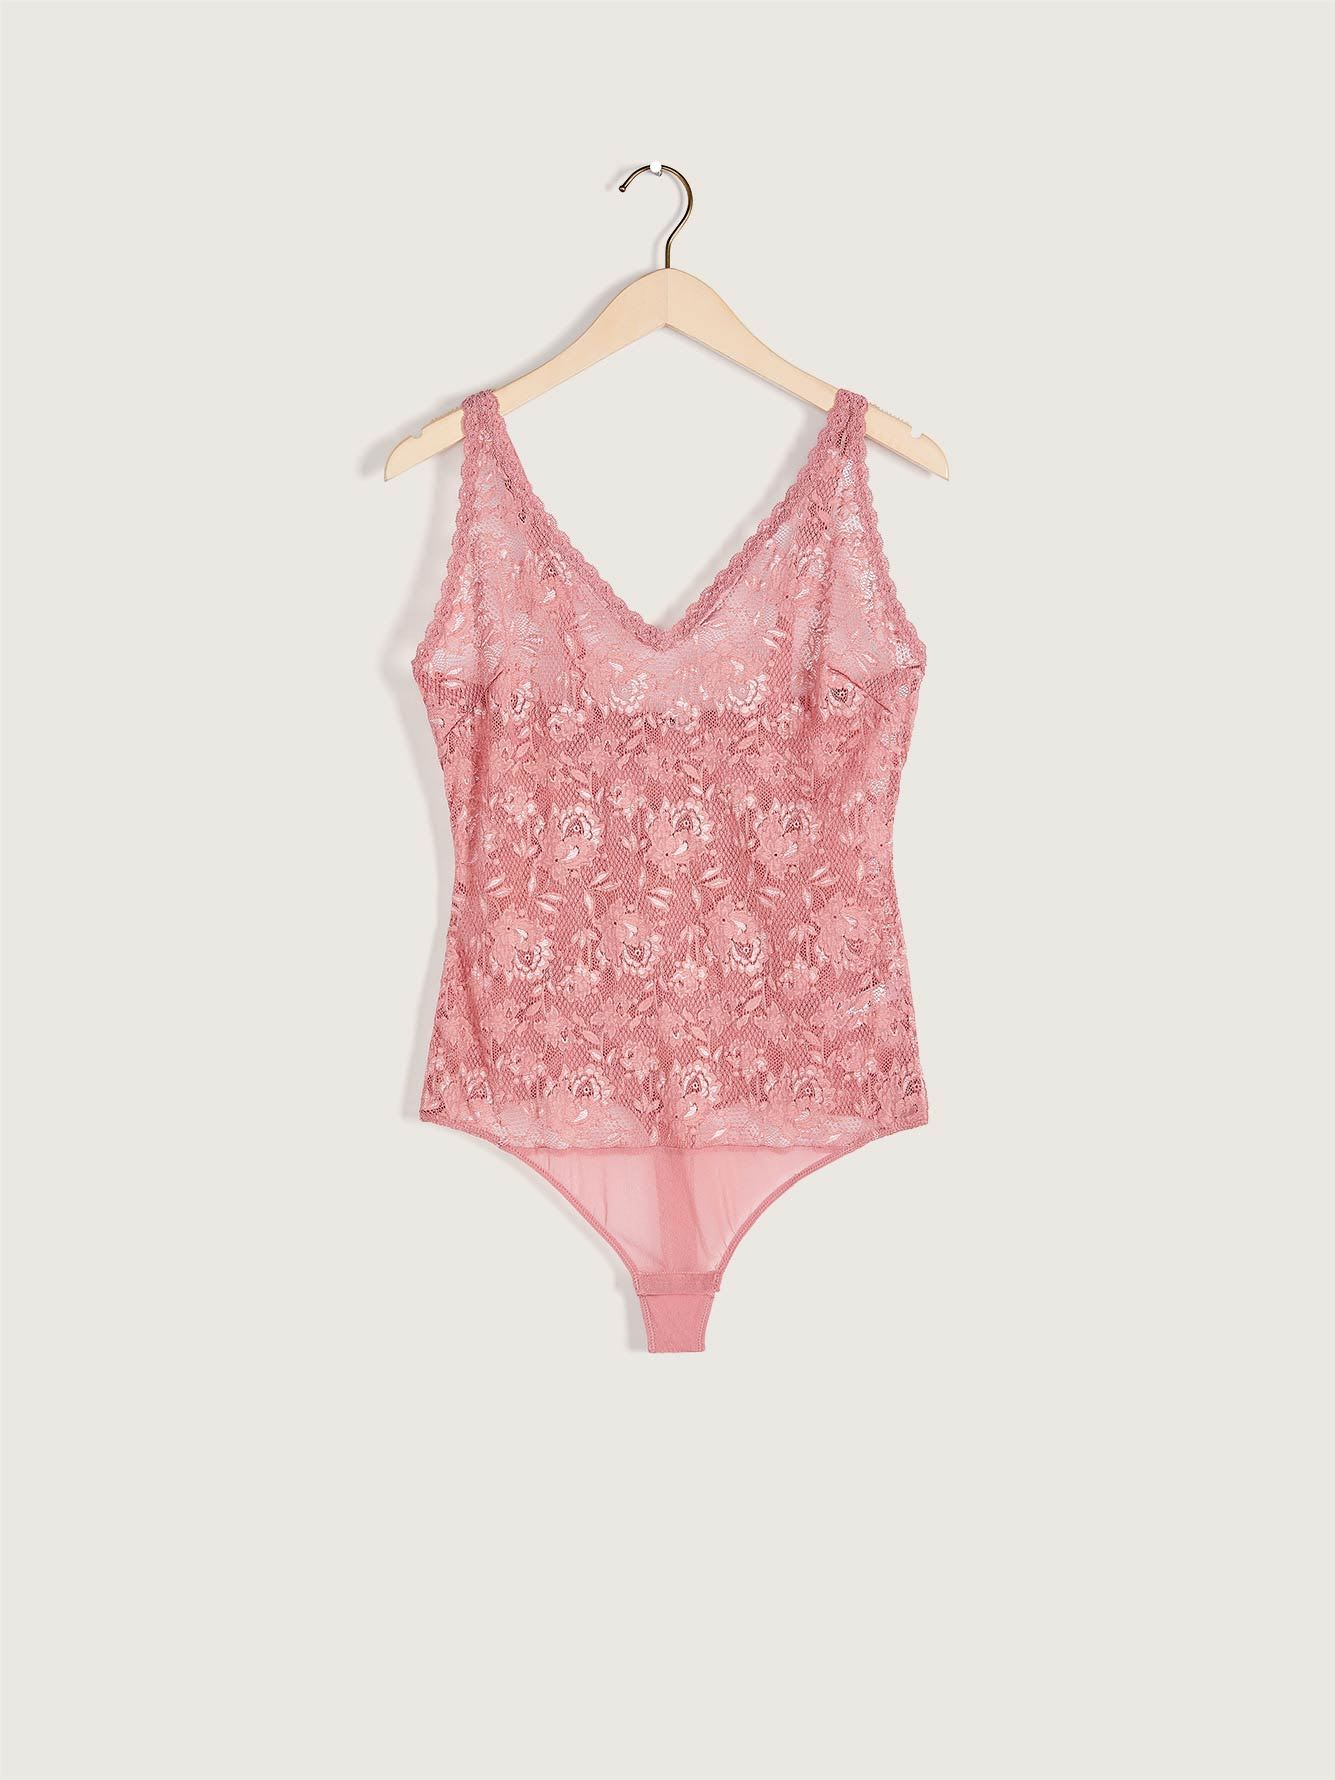 Teddy Never Say Never Lace Bodysuit - Cosabella